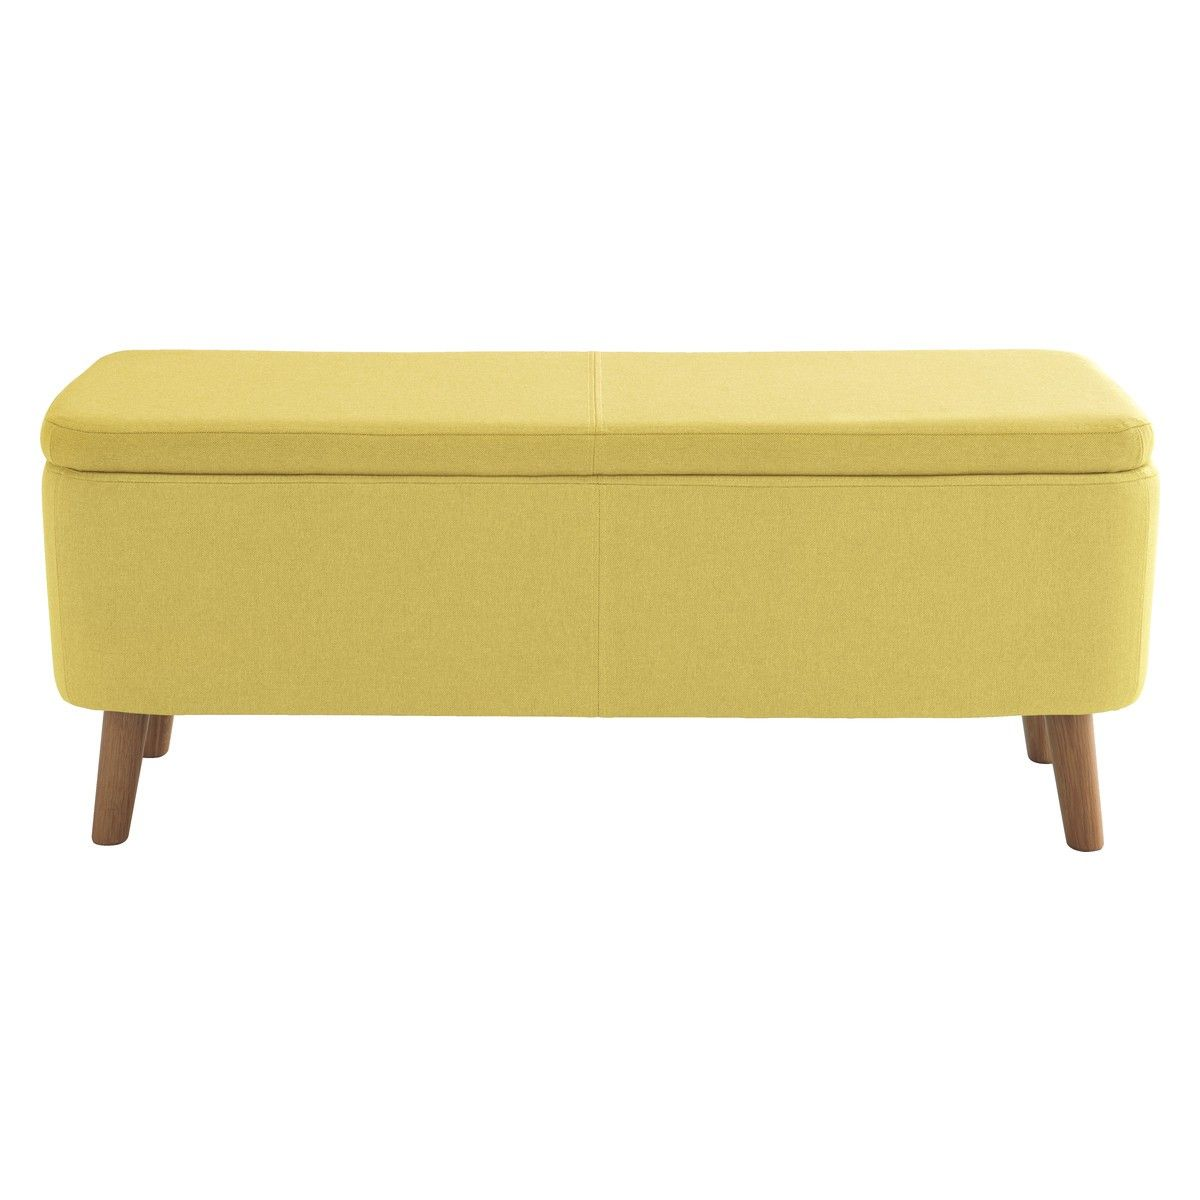 jacobs grey upholstered storage bench  storage benches storage  - jacobs saffron yellow upholstered storage bench